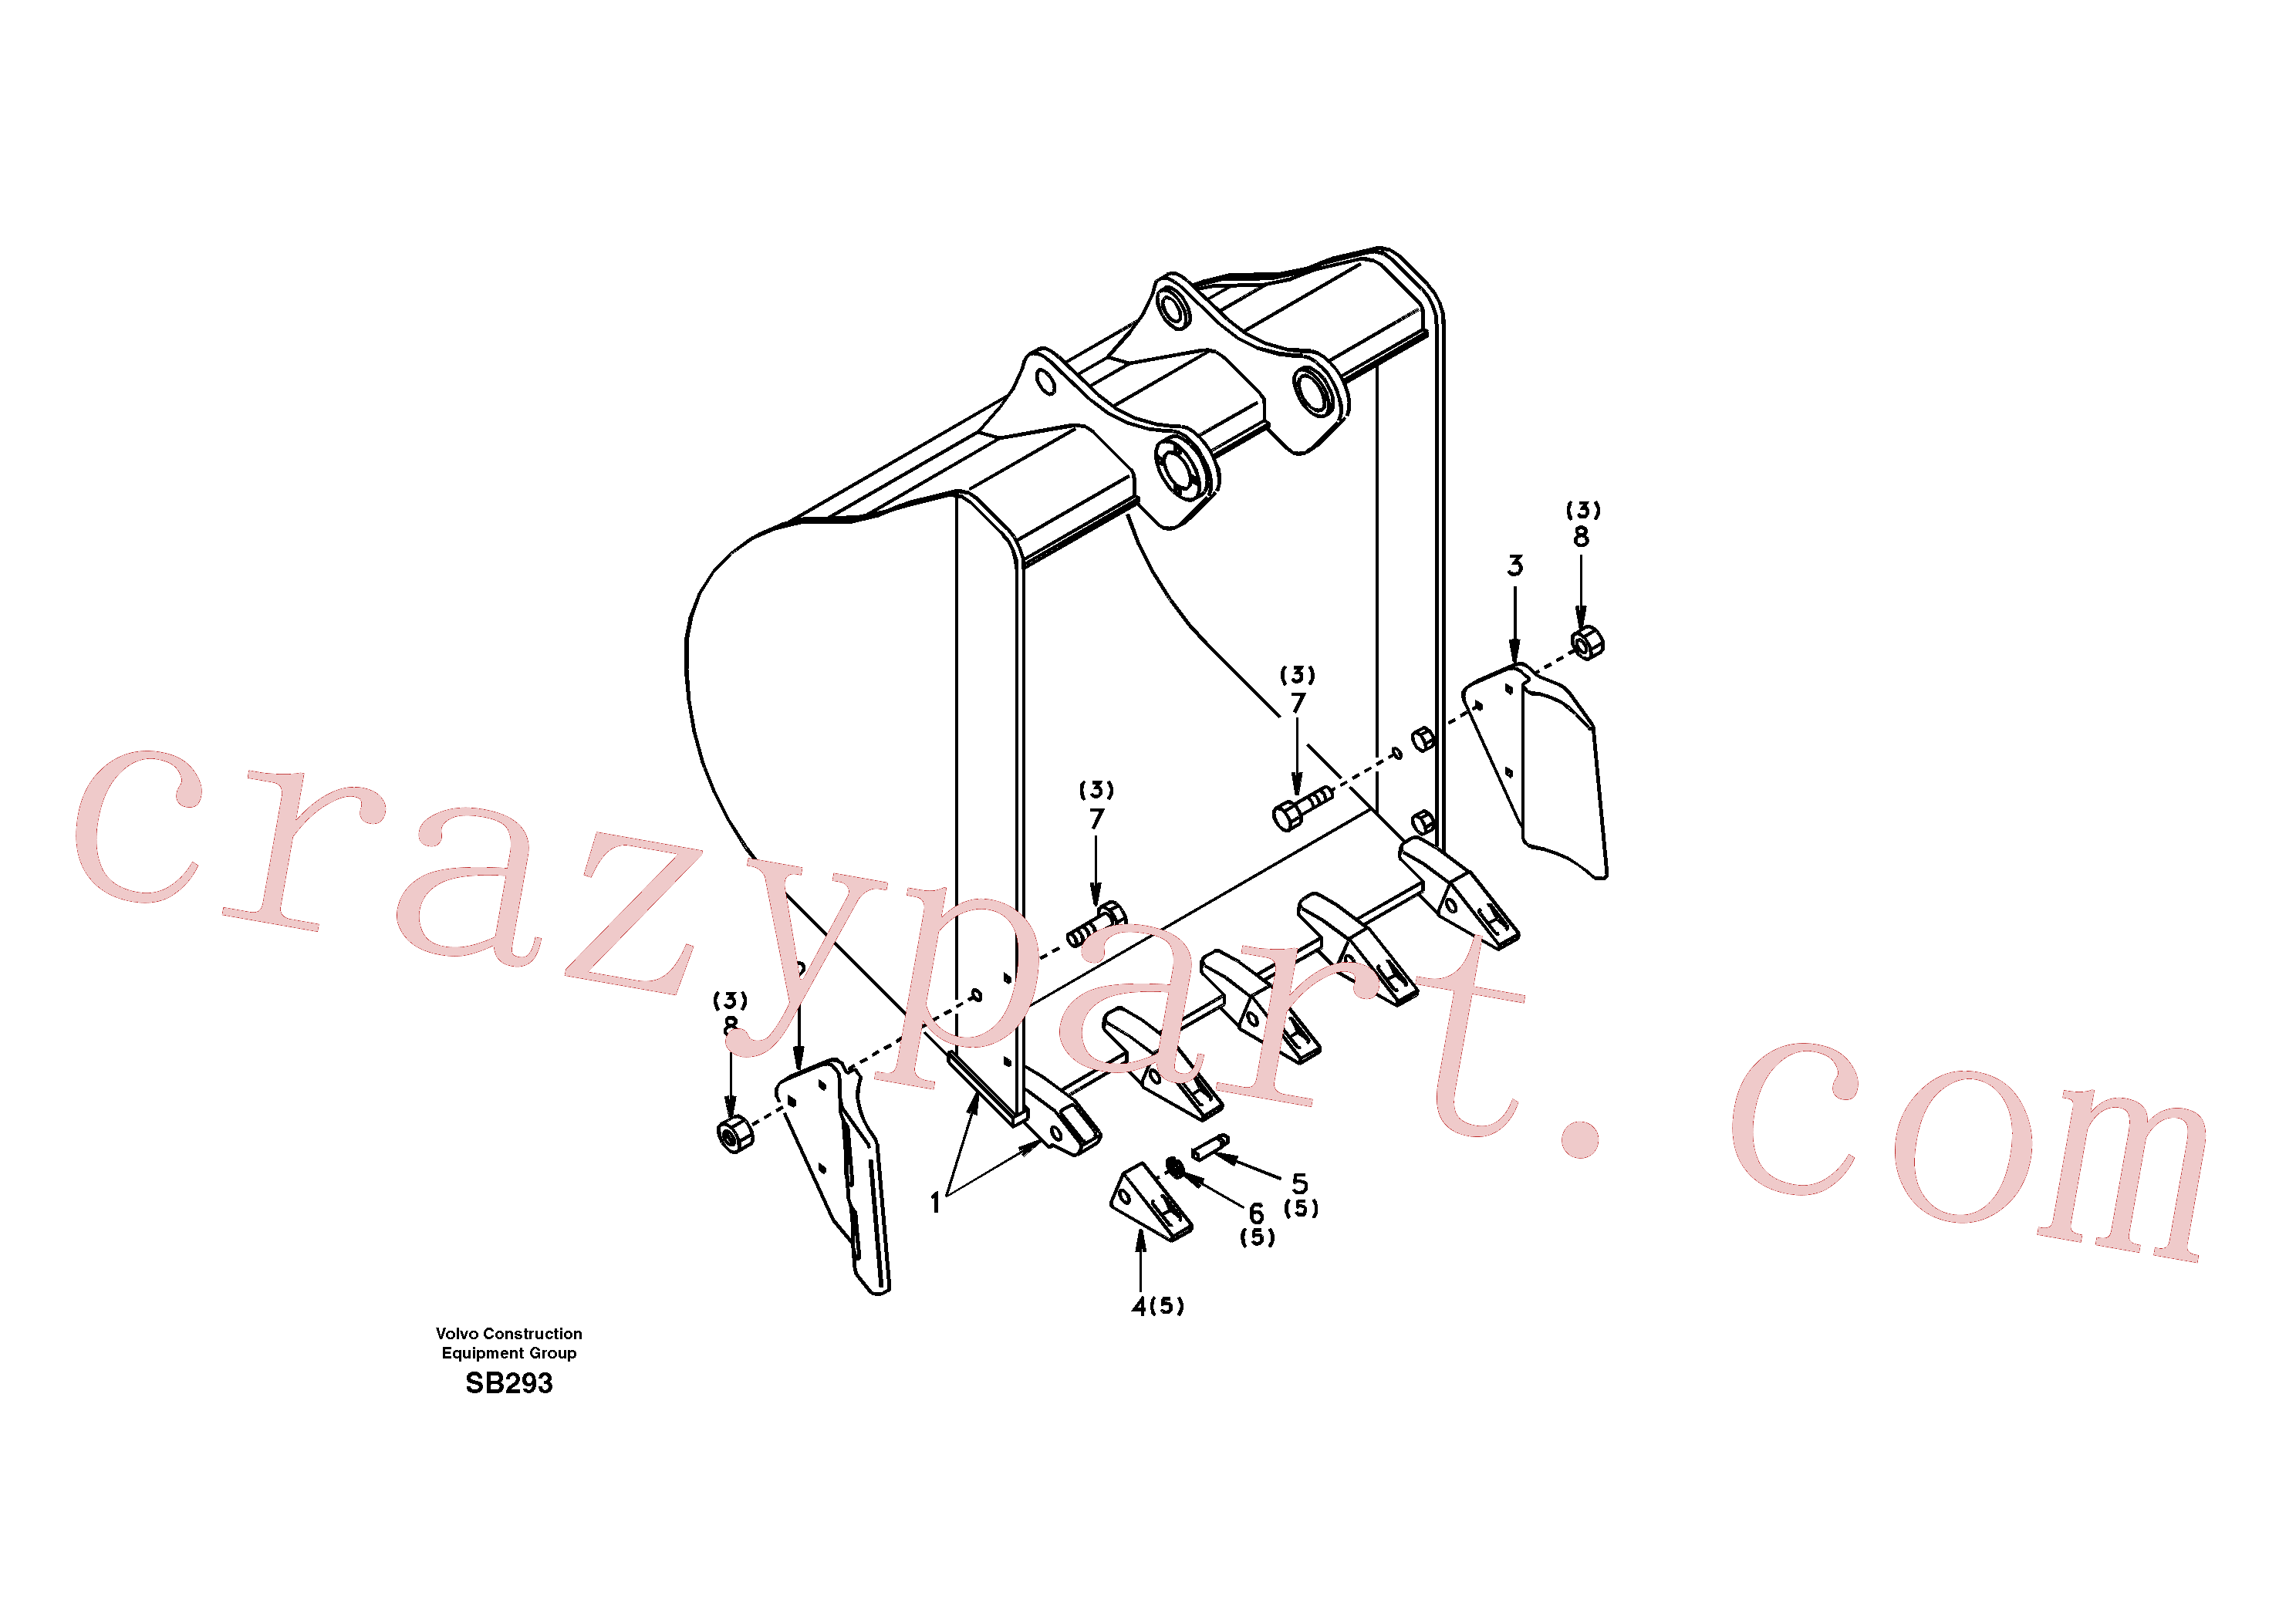 SA1171-00412 for Volvo Buckets for super long boom(SB293 assembly)